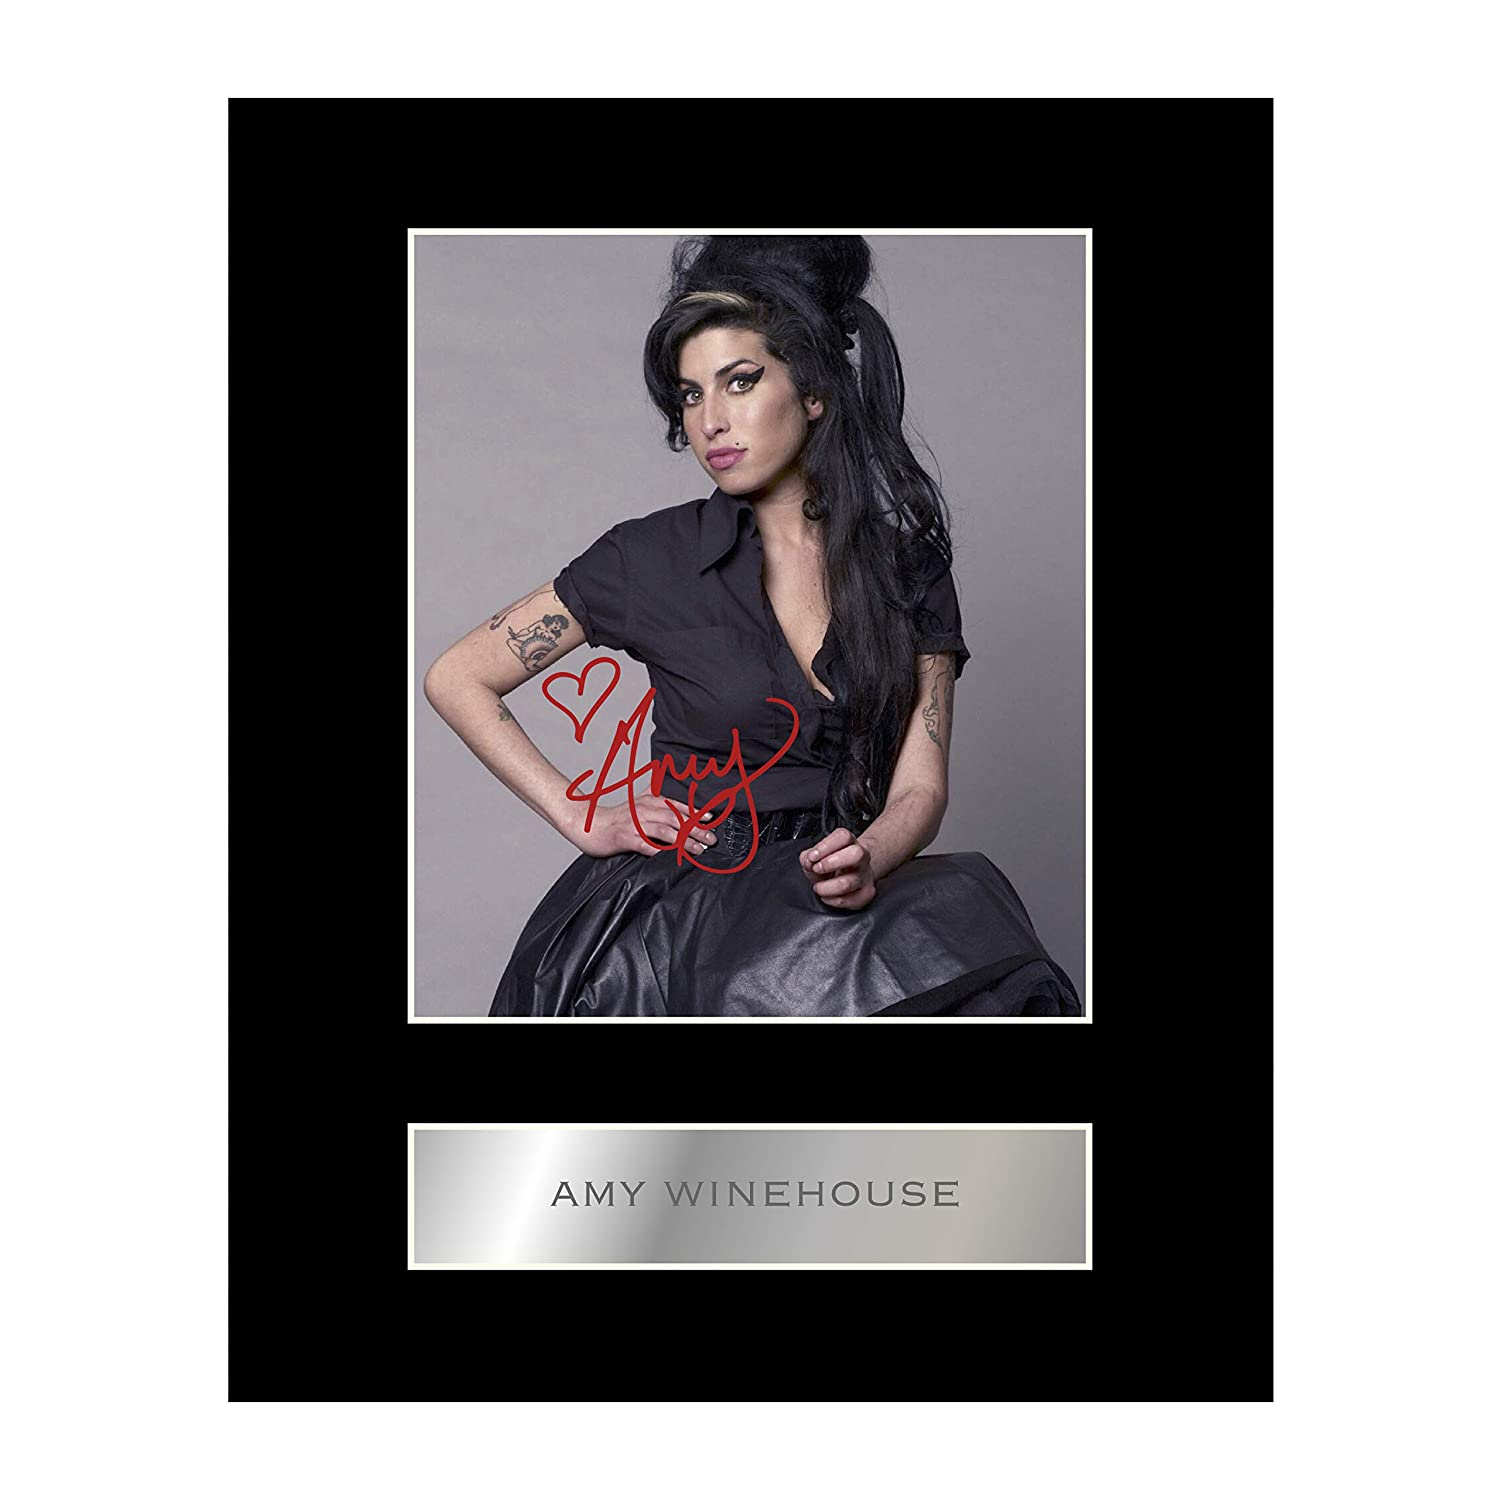 Amy Winehouse Signed Mounted Photo Display #2 Iconic pics